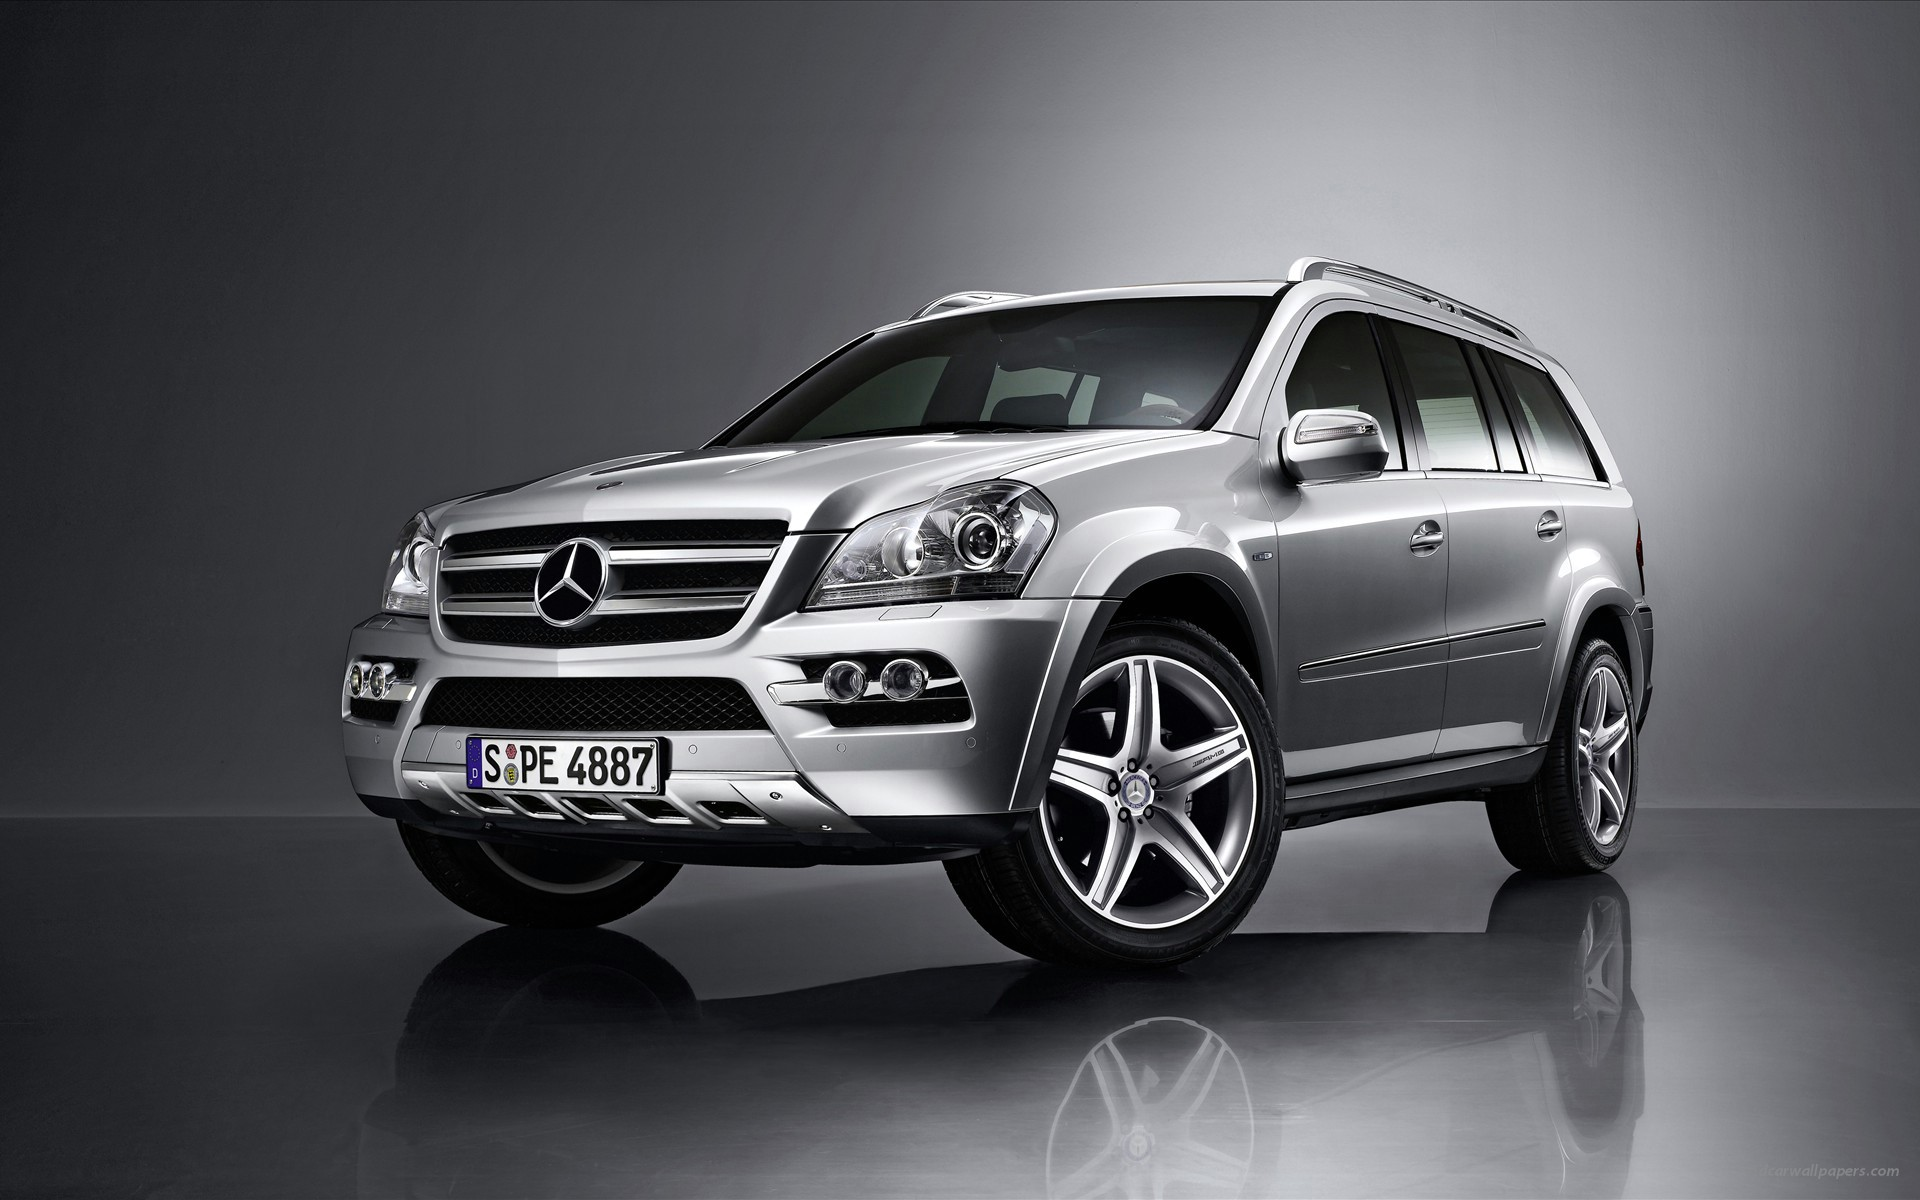 Mercedes Benz SUV wallpaper